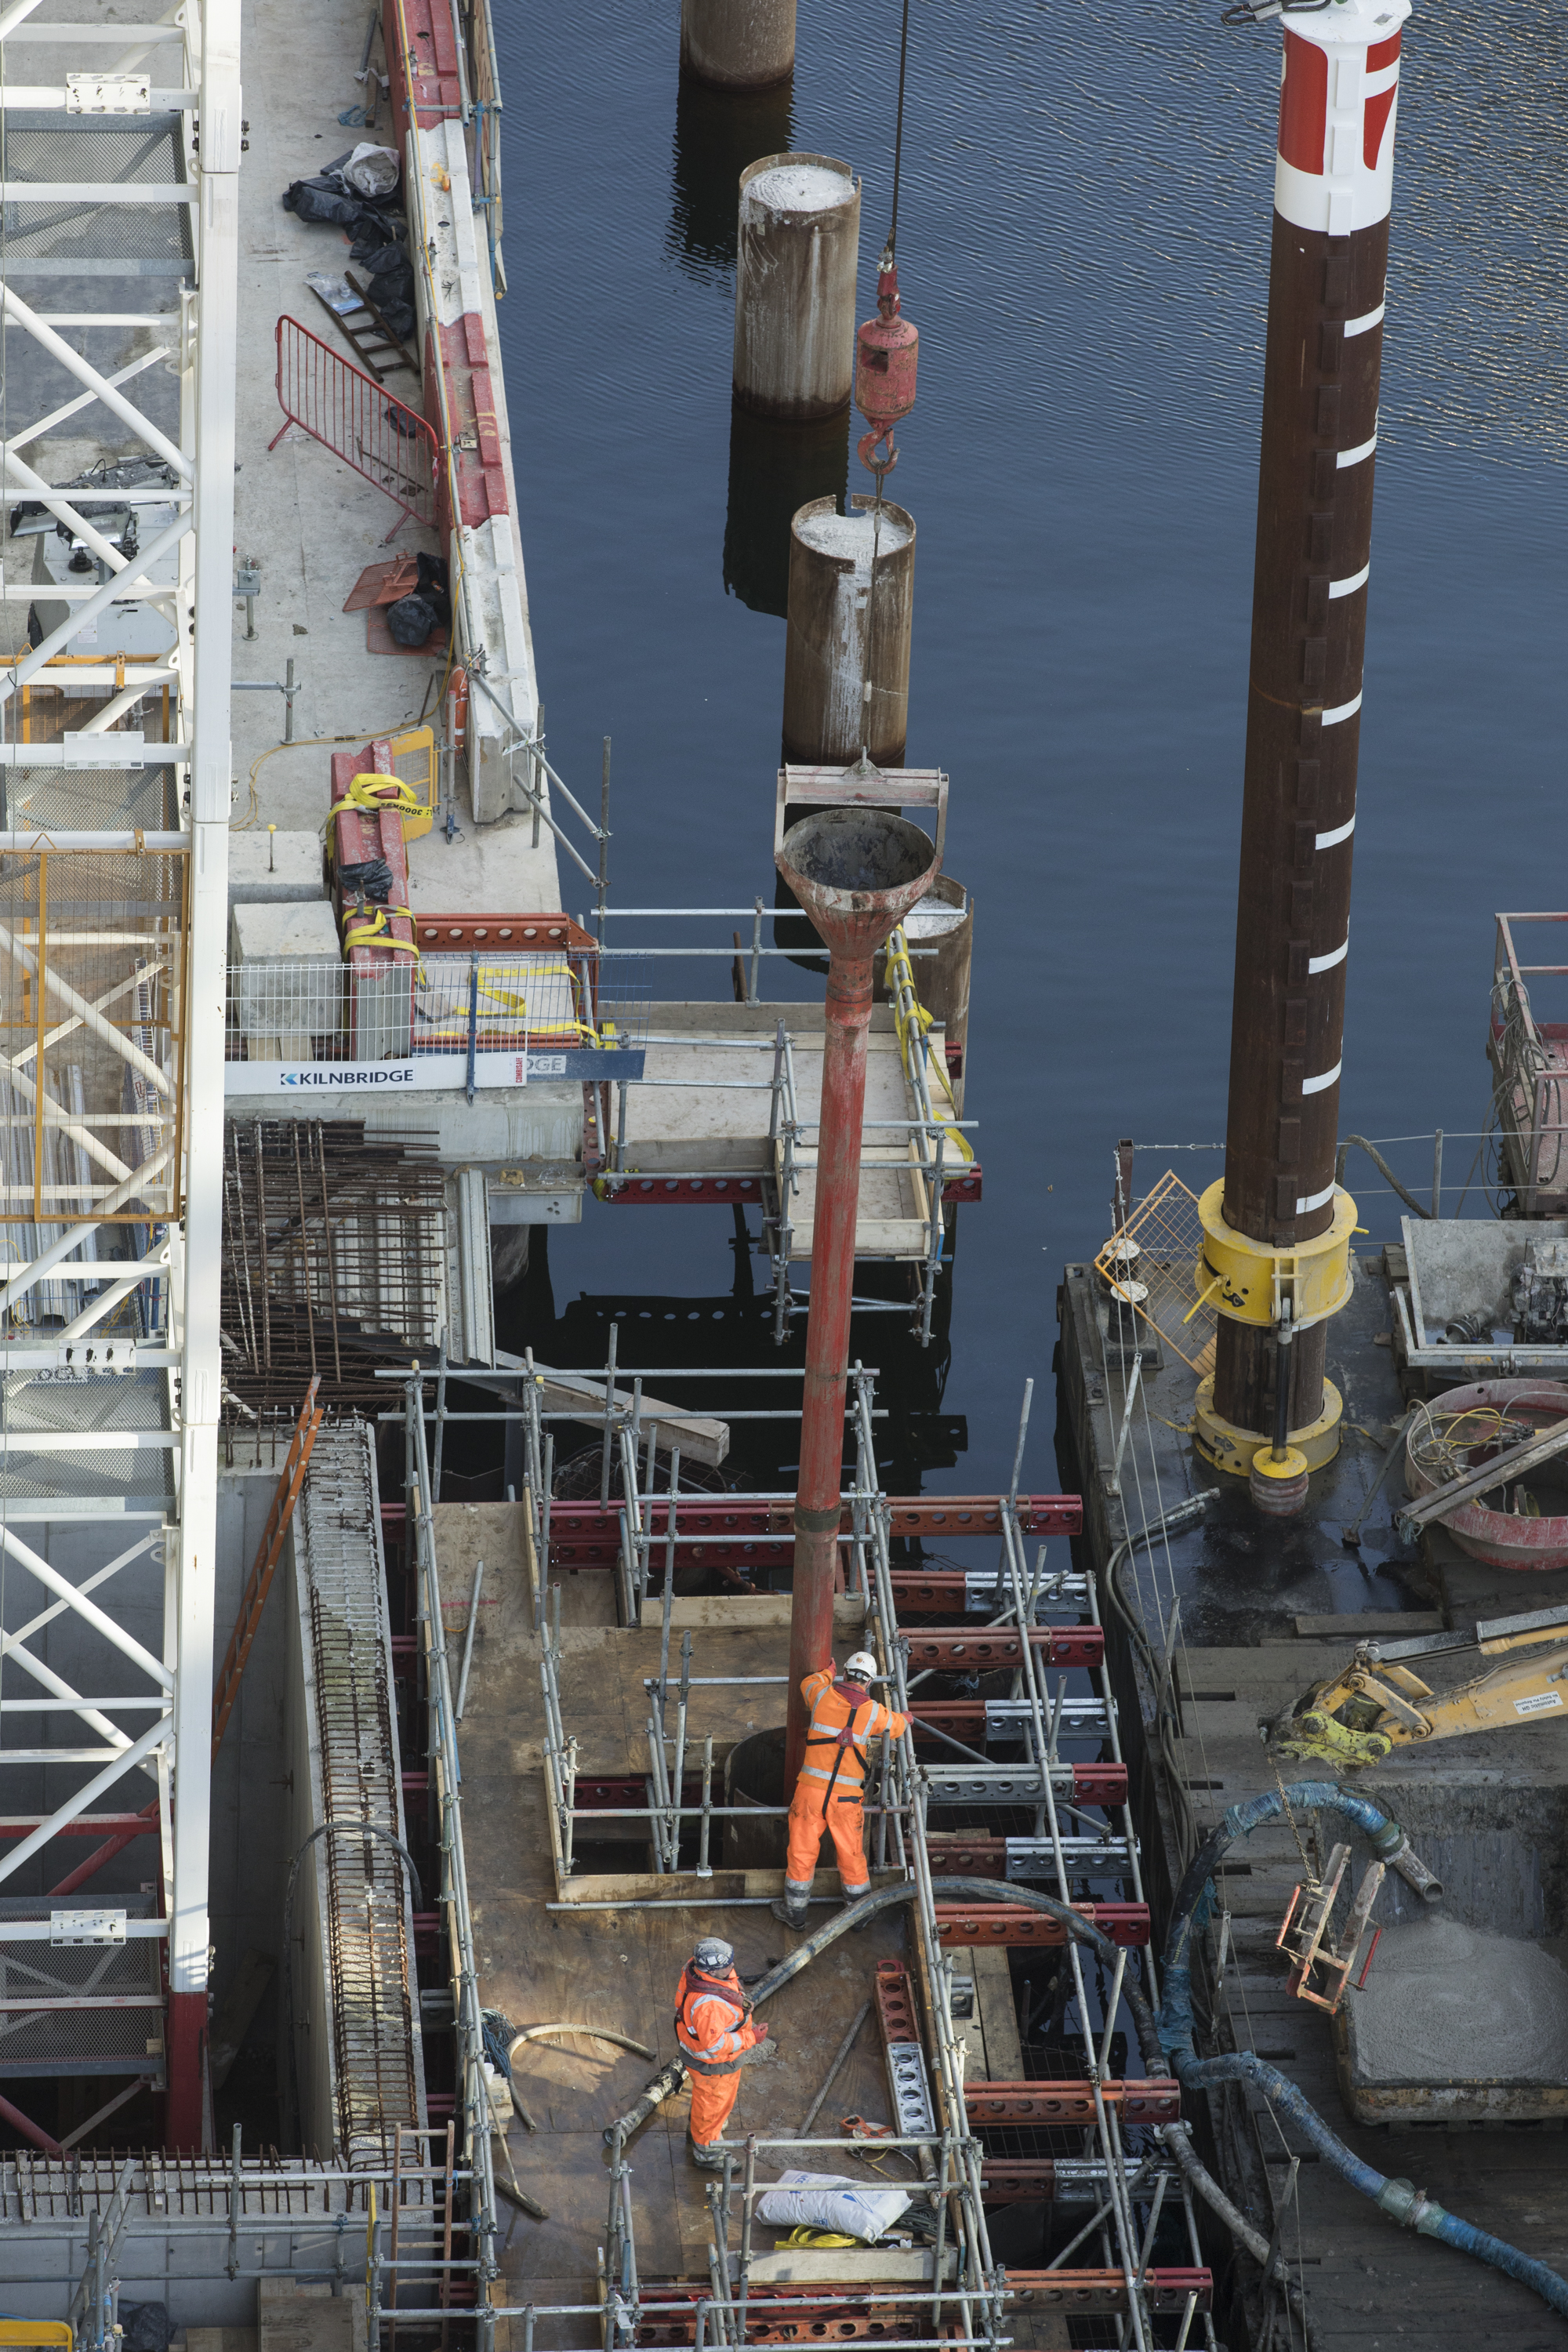 Temporary works platforms for the construction of Montgomery Bridge, Canary Wharf